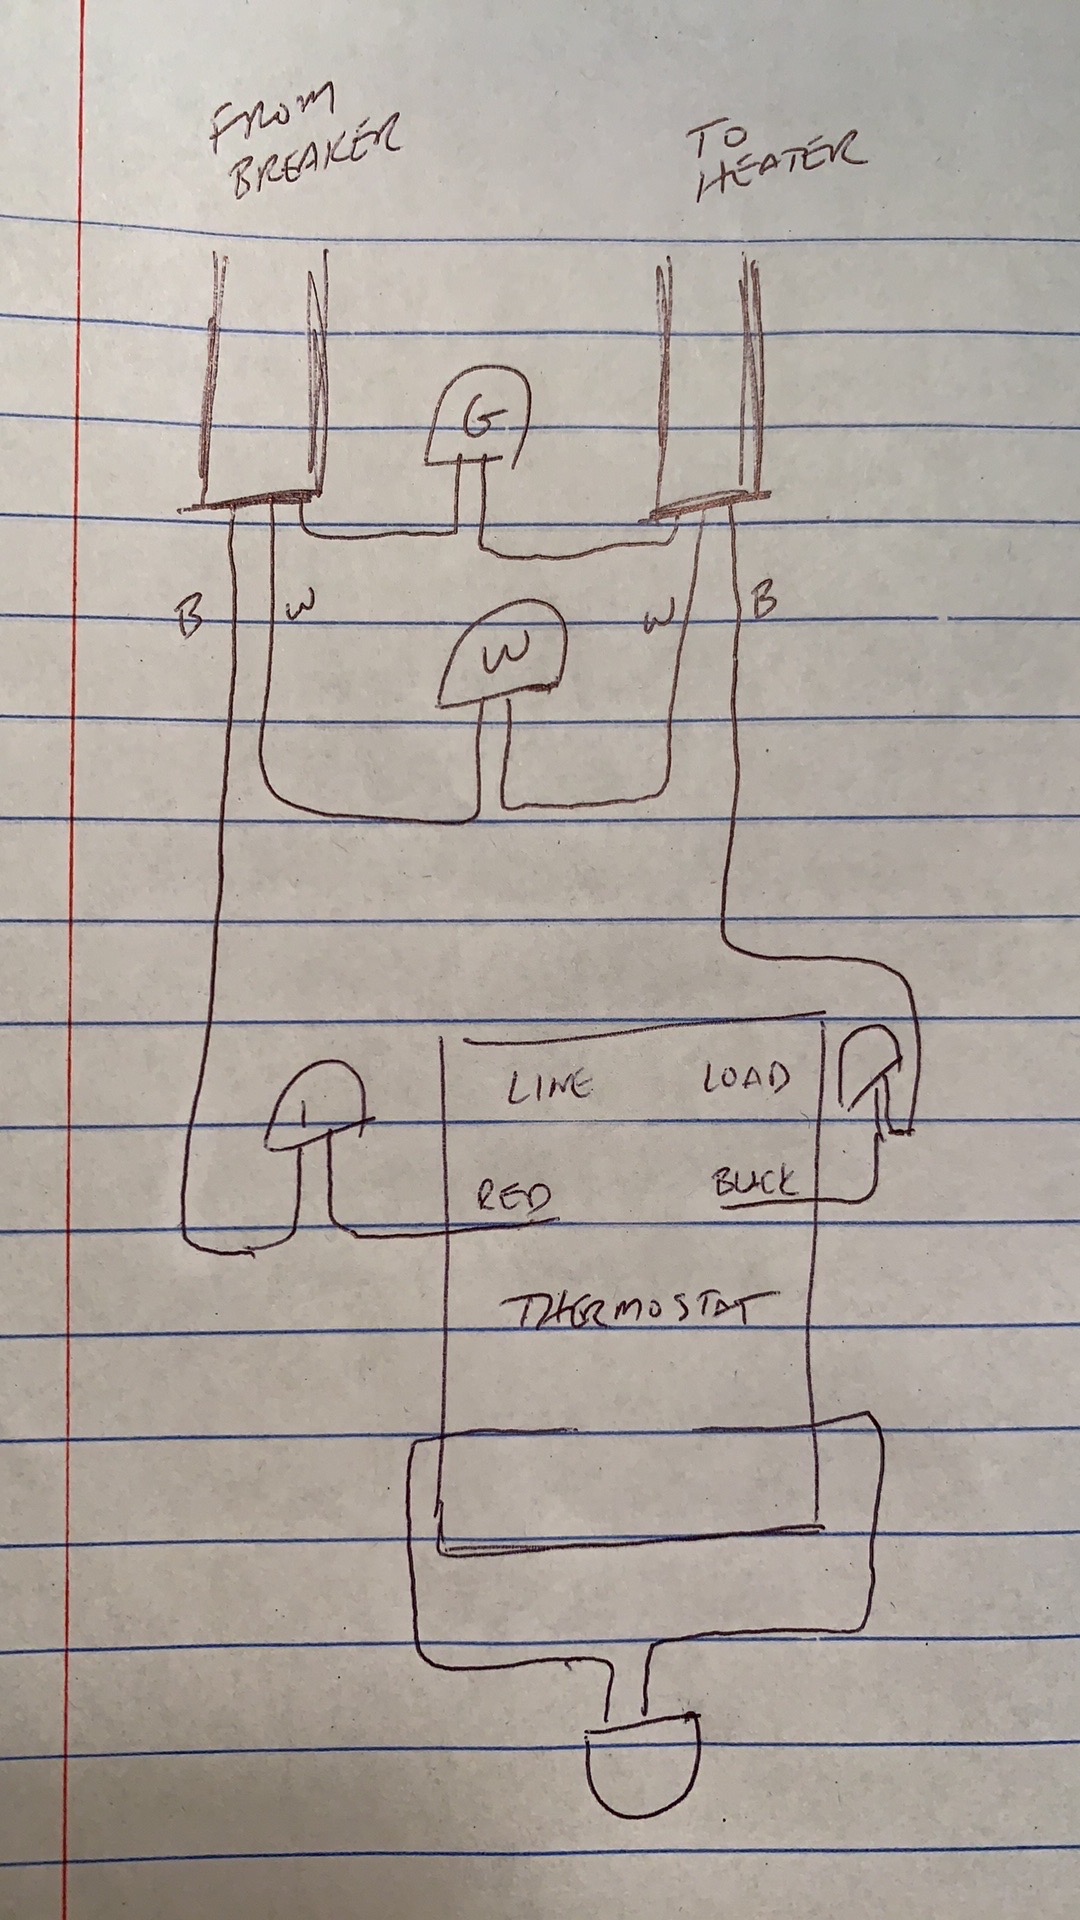 240v electric baseboard heat wiring diagram electrical diy wiring a double pole thermostat for electric baseboard 240v  wiring a double pole thermostat for